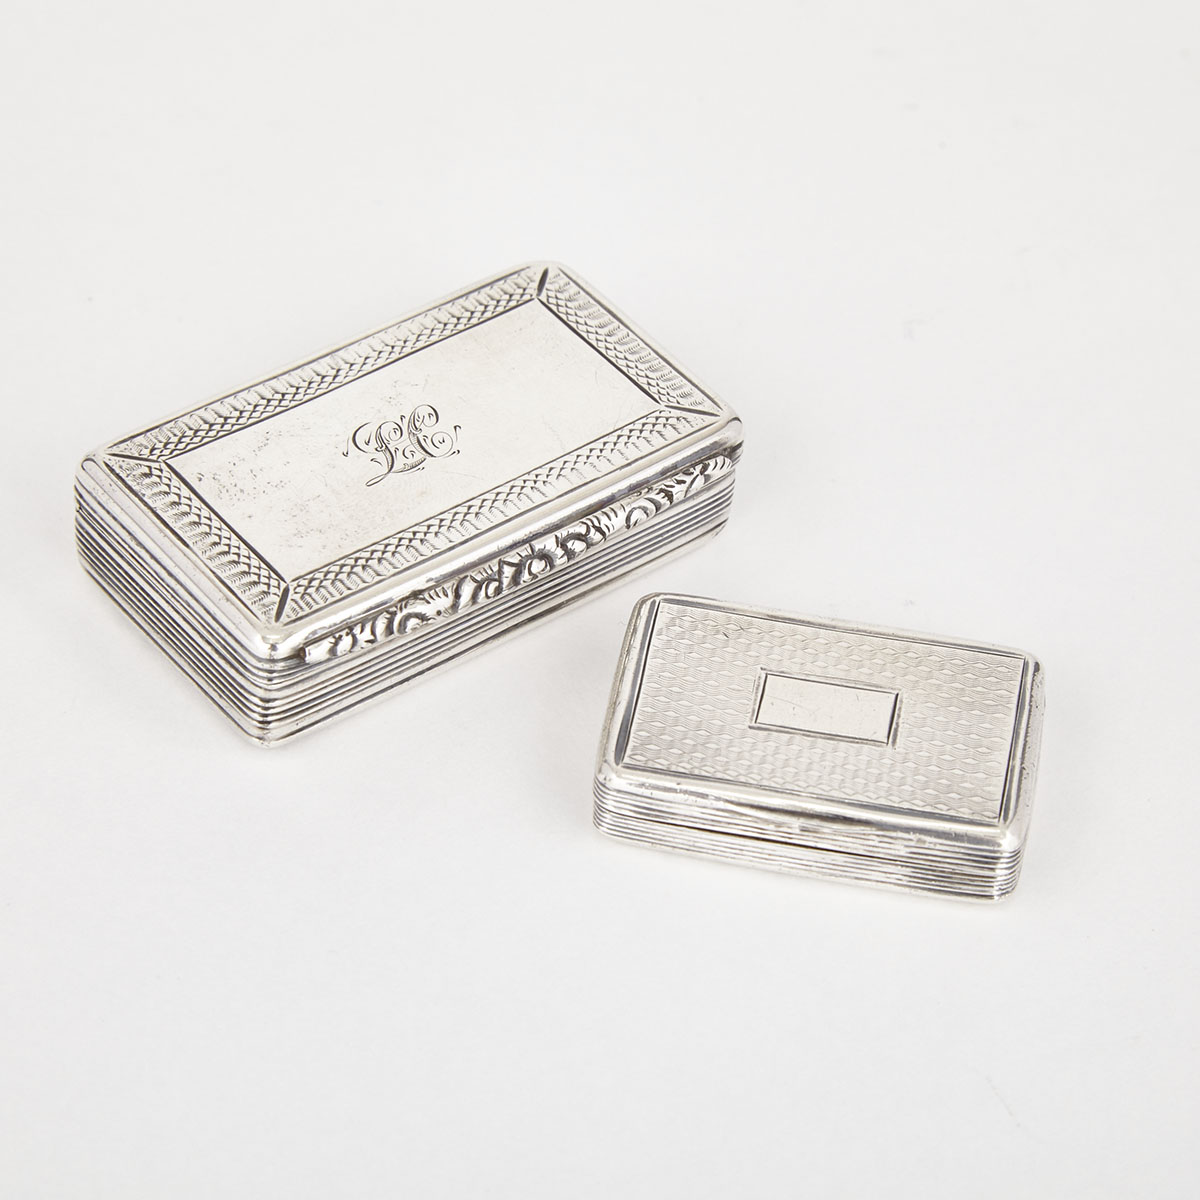 William IV Silver Snuff Box, Francis Clark, Birmingham, 1836 and a Victorian Vinaigrette, William Simpson, 1842